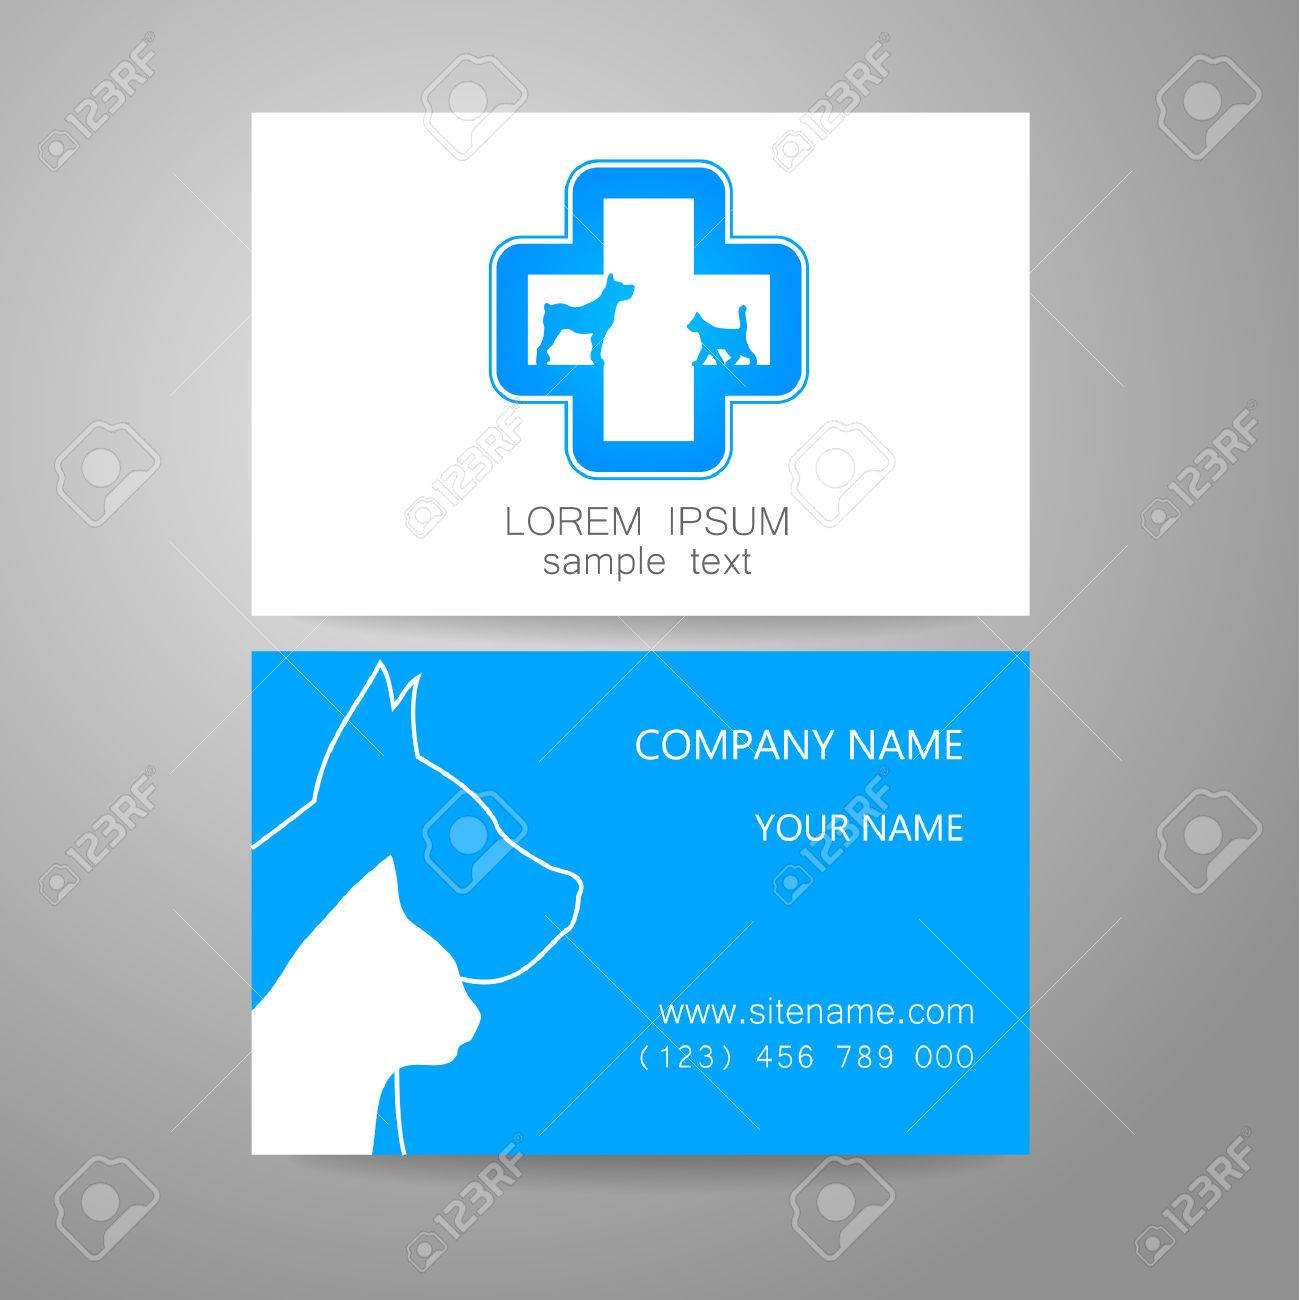 Veterinary template logo the idea of the logo for the veterinary the idea of the logo for the veterinary service pharmacy hospital center care shelter animals branded business card reheart Image collections